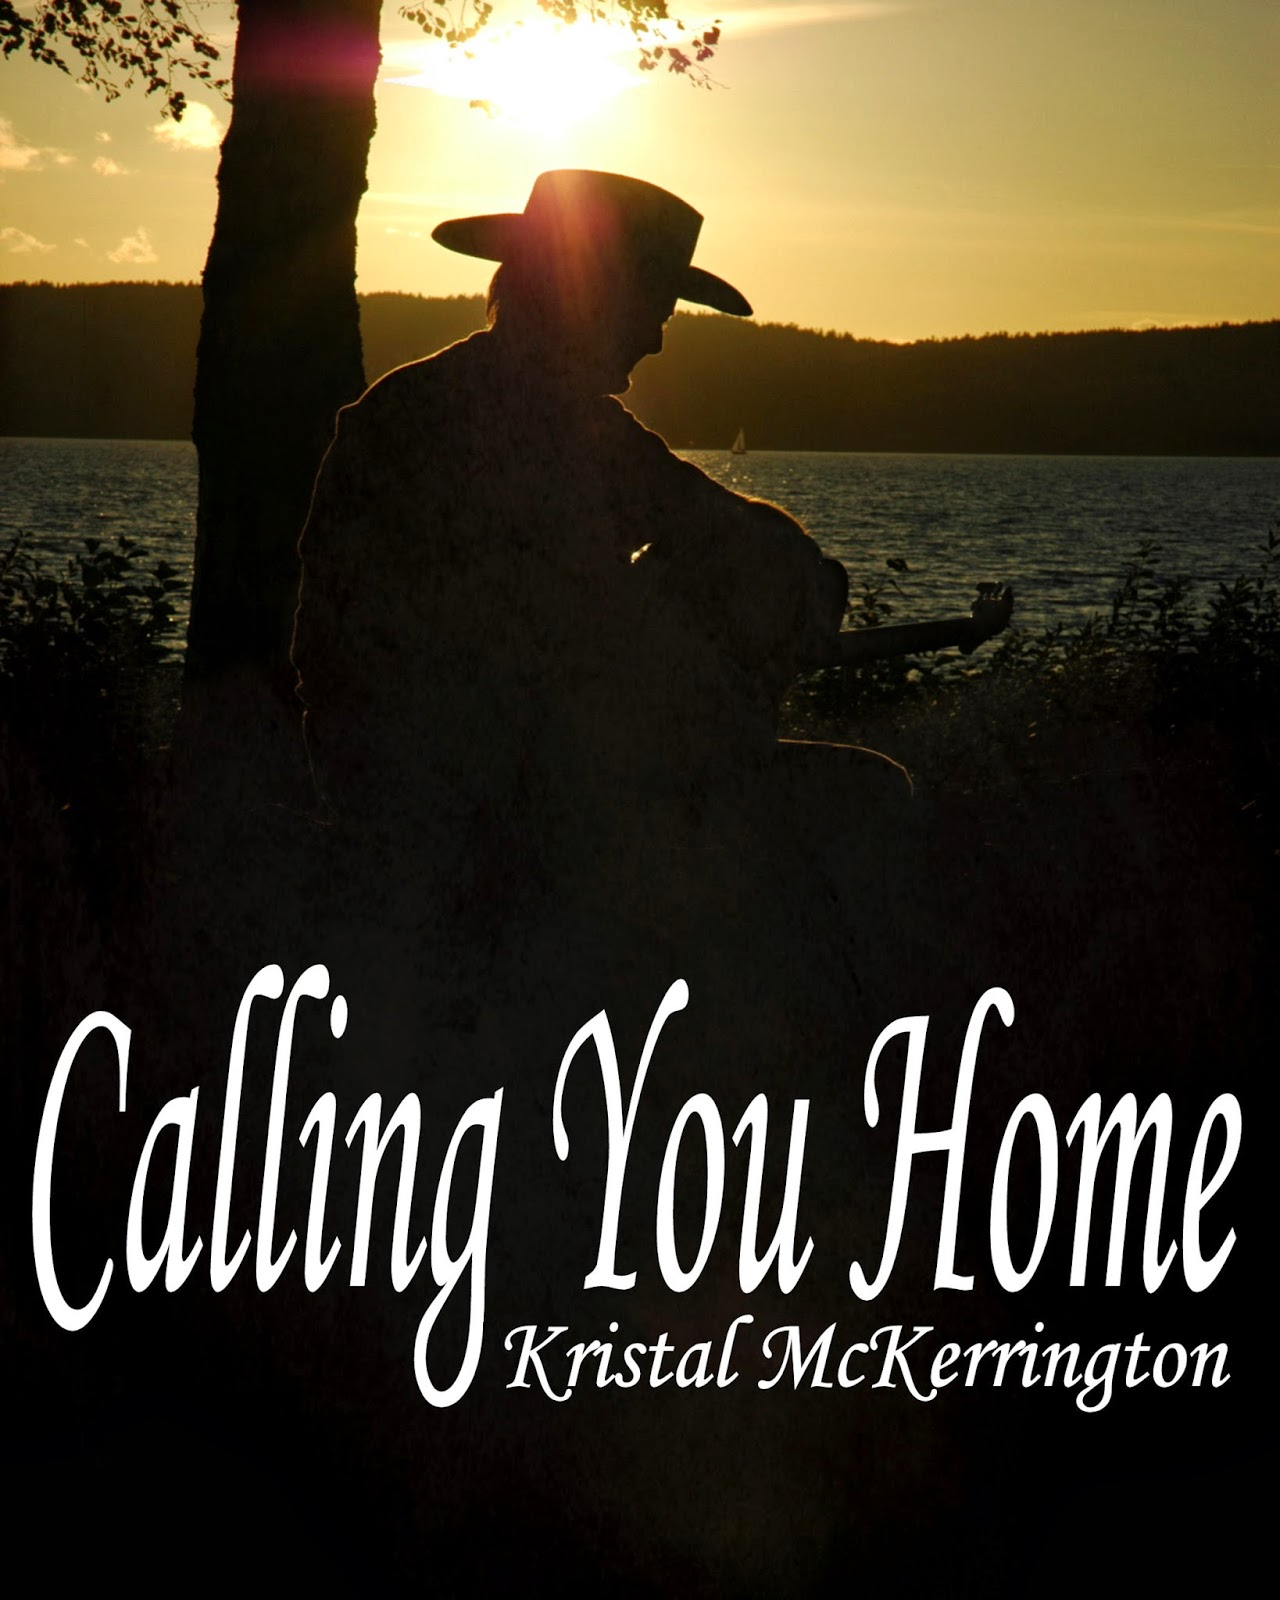 http://www.amazon.com/Calling-You-Home-Kristal-McKerrington-ebook/dp/B00DPPTP8U/ref=sr_1_3?s=books&ie=UTF8&qid=1395790317&sr=1-3&keywords=kristal+mckerrington